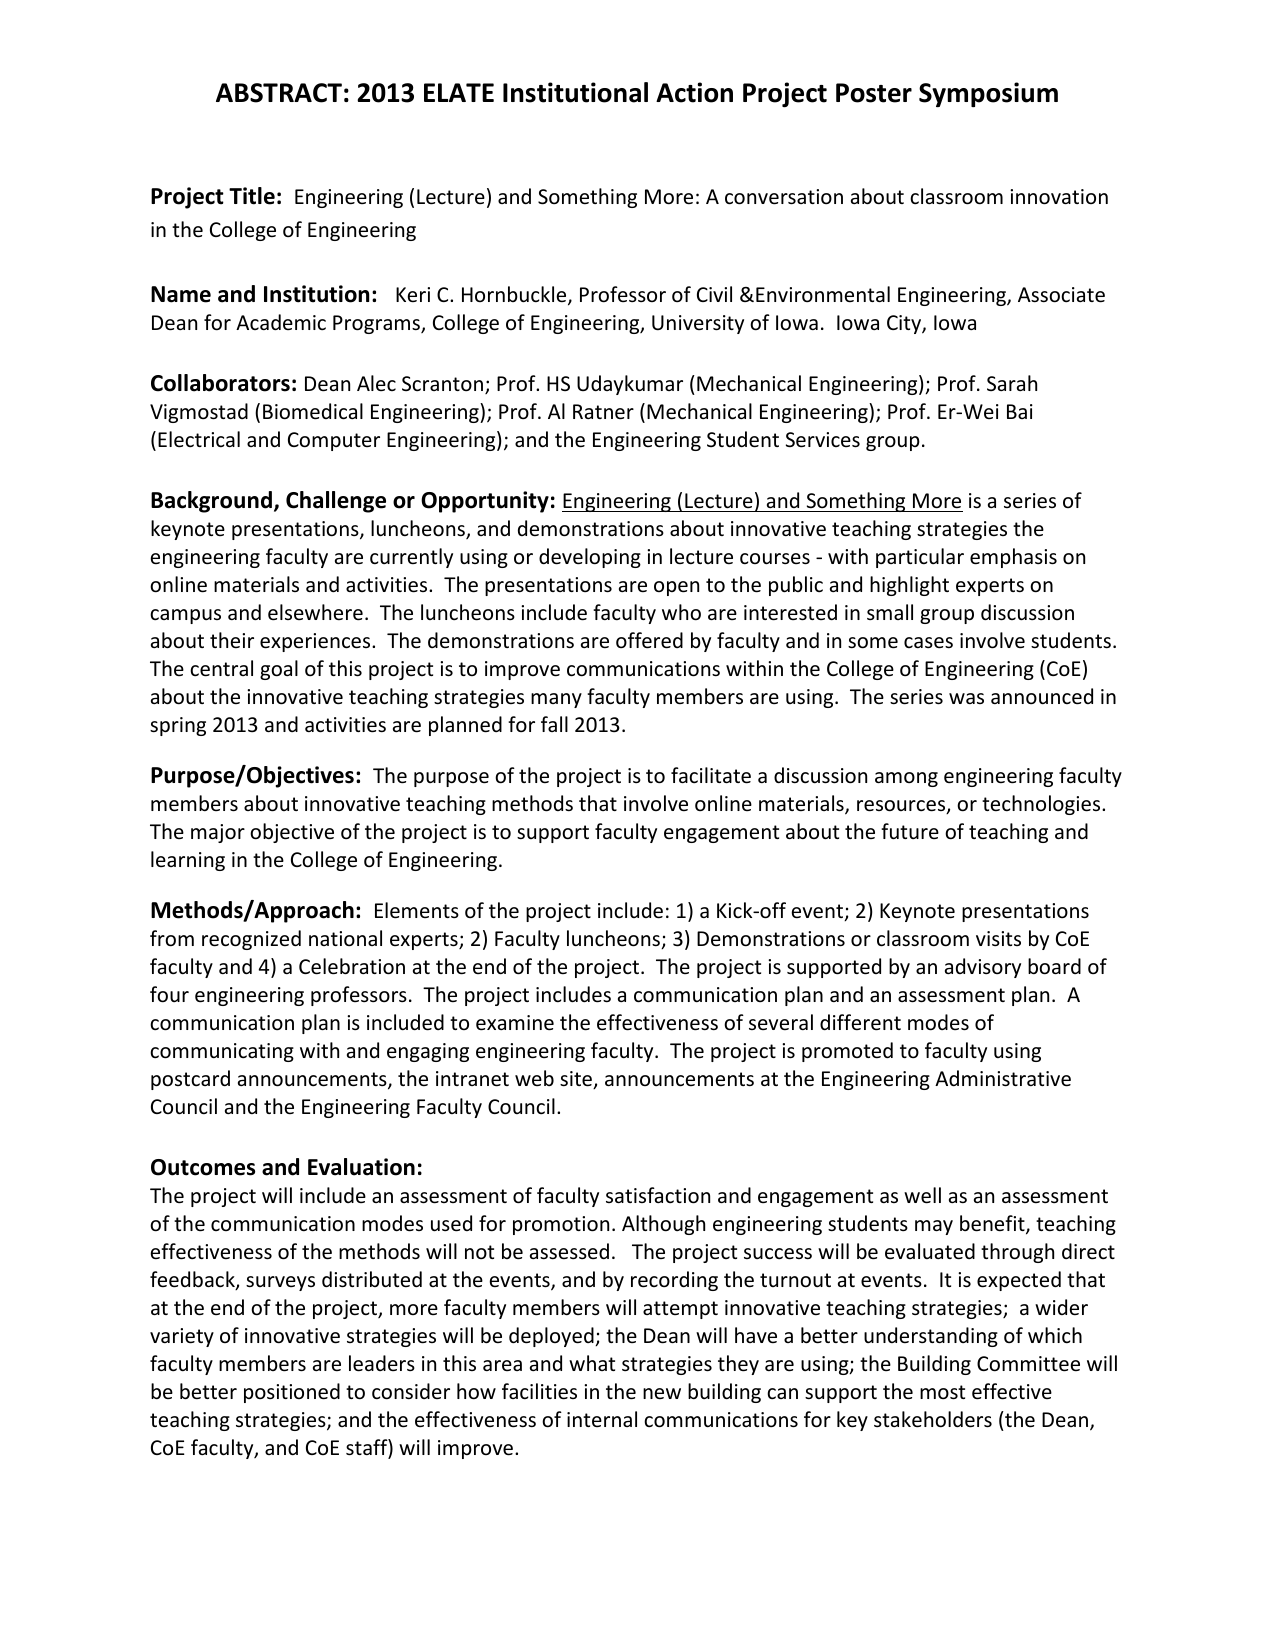 ABSTRACT: 2013 ELATE Institutional Action Project Poster